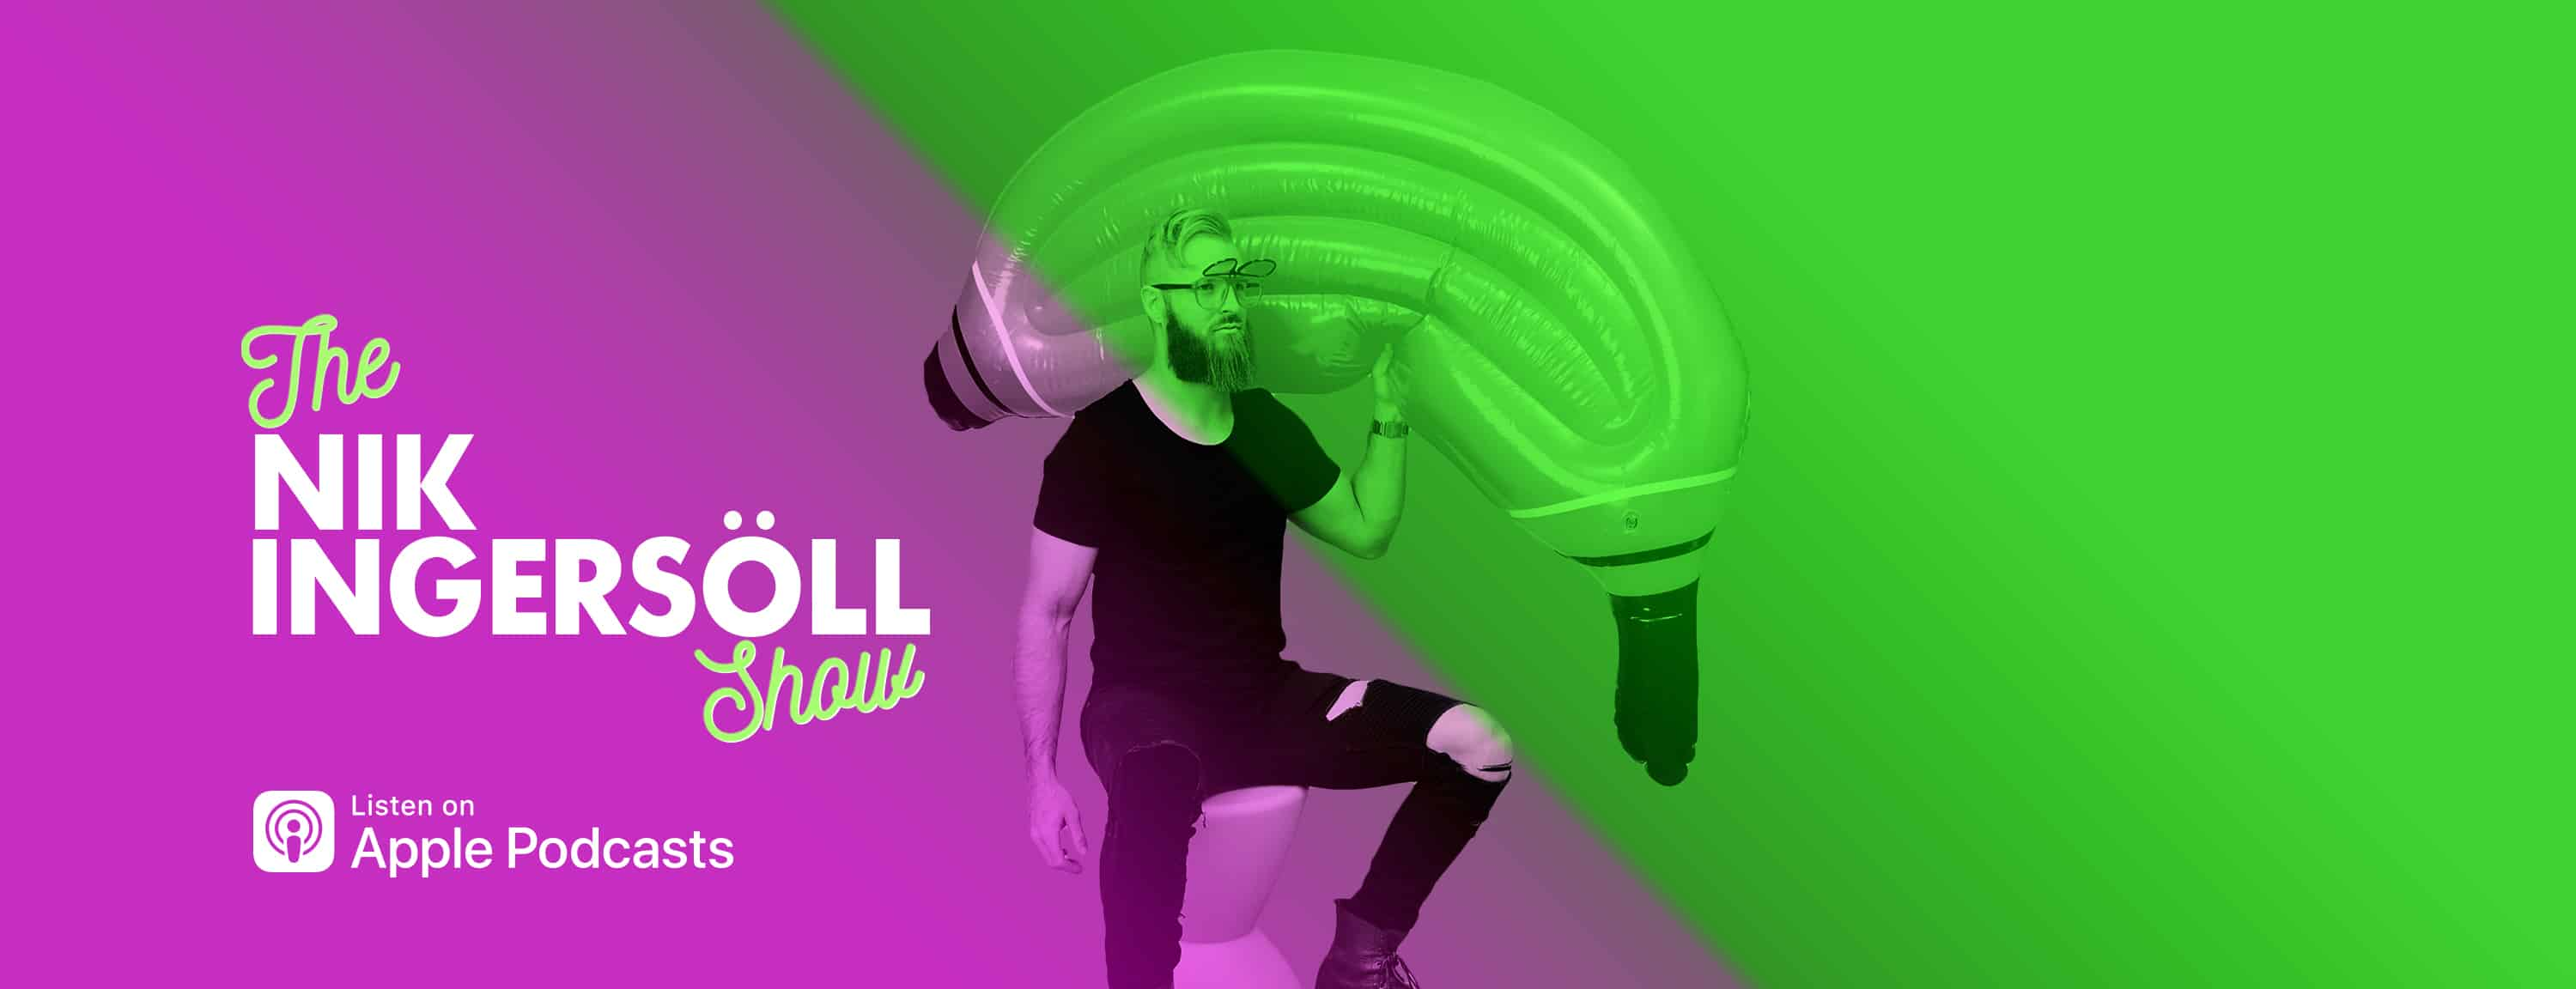 nik ingersoll show on apple podcasts